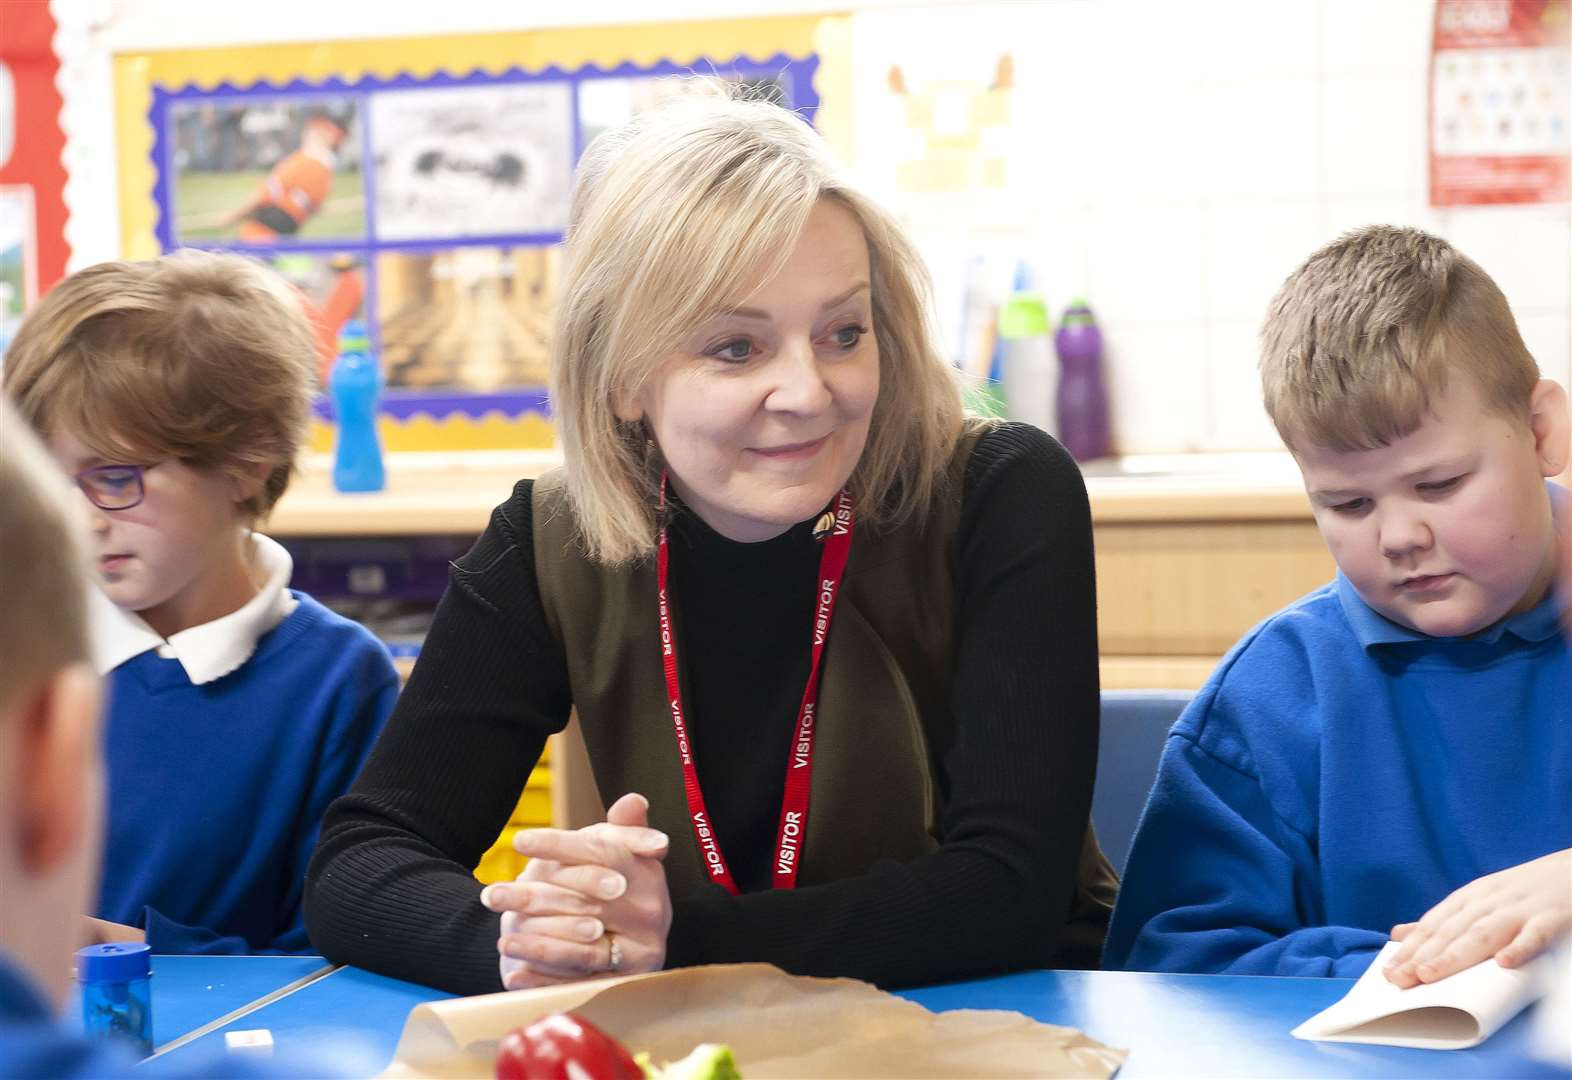 South West Norfolk MP 'impressed' after visit to primary schools